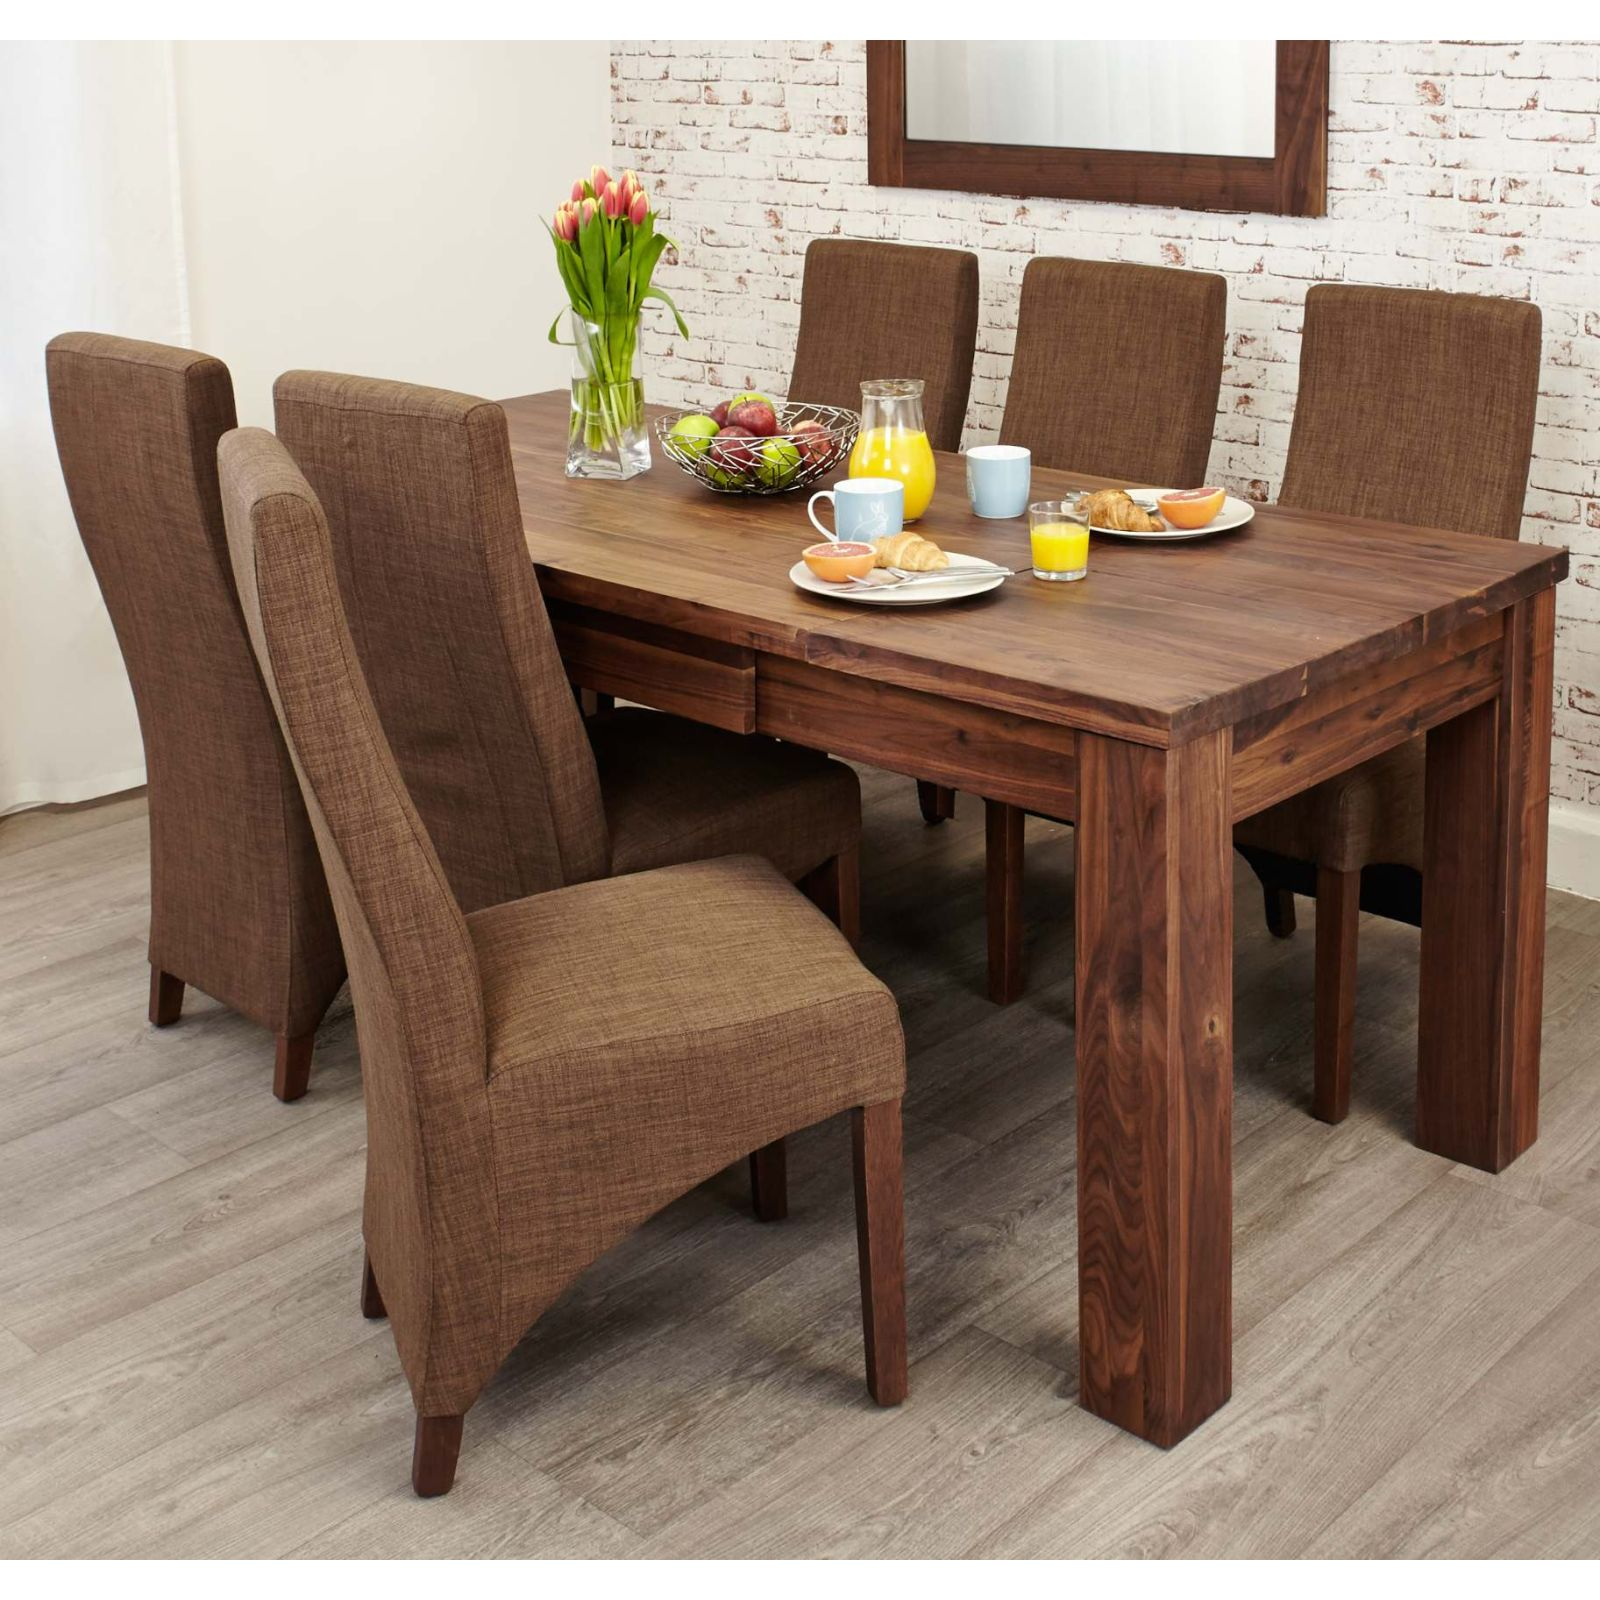 linea solid walnut furniture large dining room extending table ebay. Black Bedroom Furniture Sets. Home Design Ideas